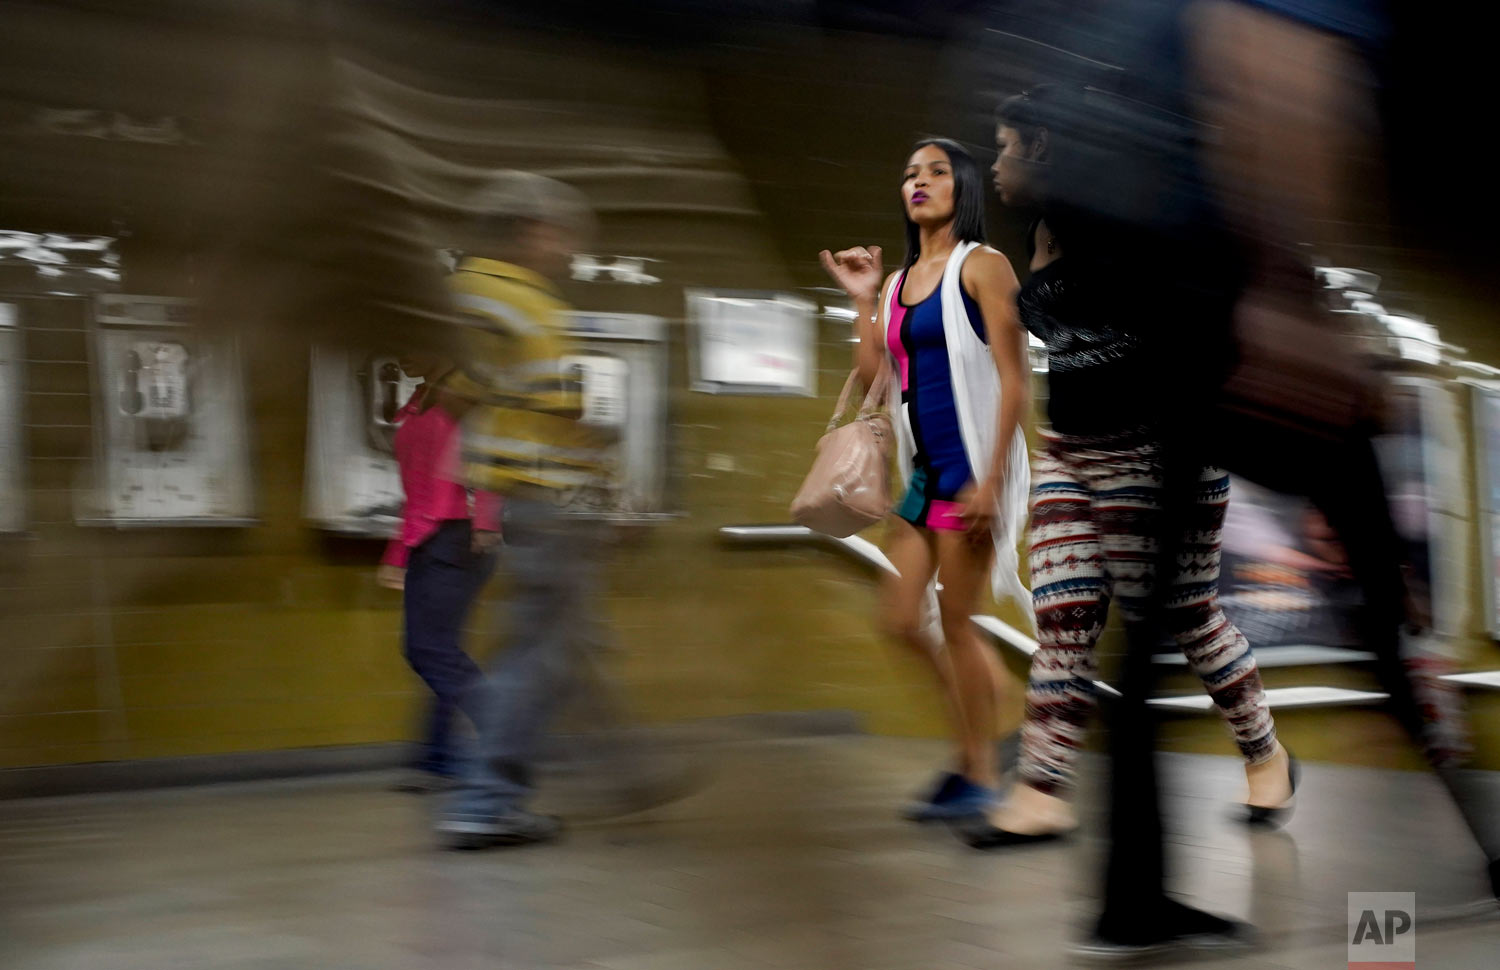 A woman wearing makeup and with her hair straightened walks through the subway in Caracas, Venezuela, Friday, March 22, 2019. (AP Photo/Natacha Pisarenko)